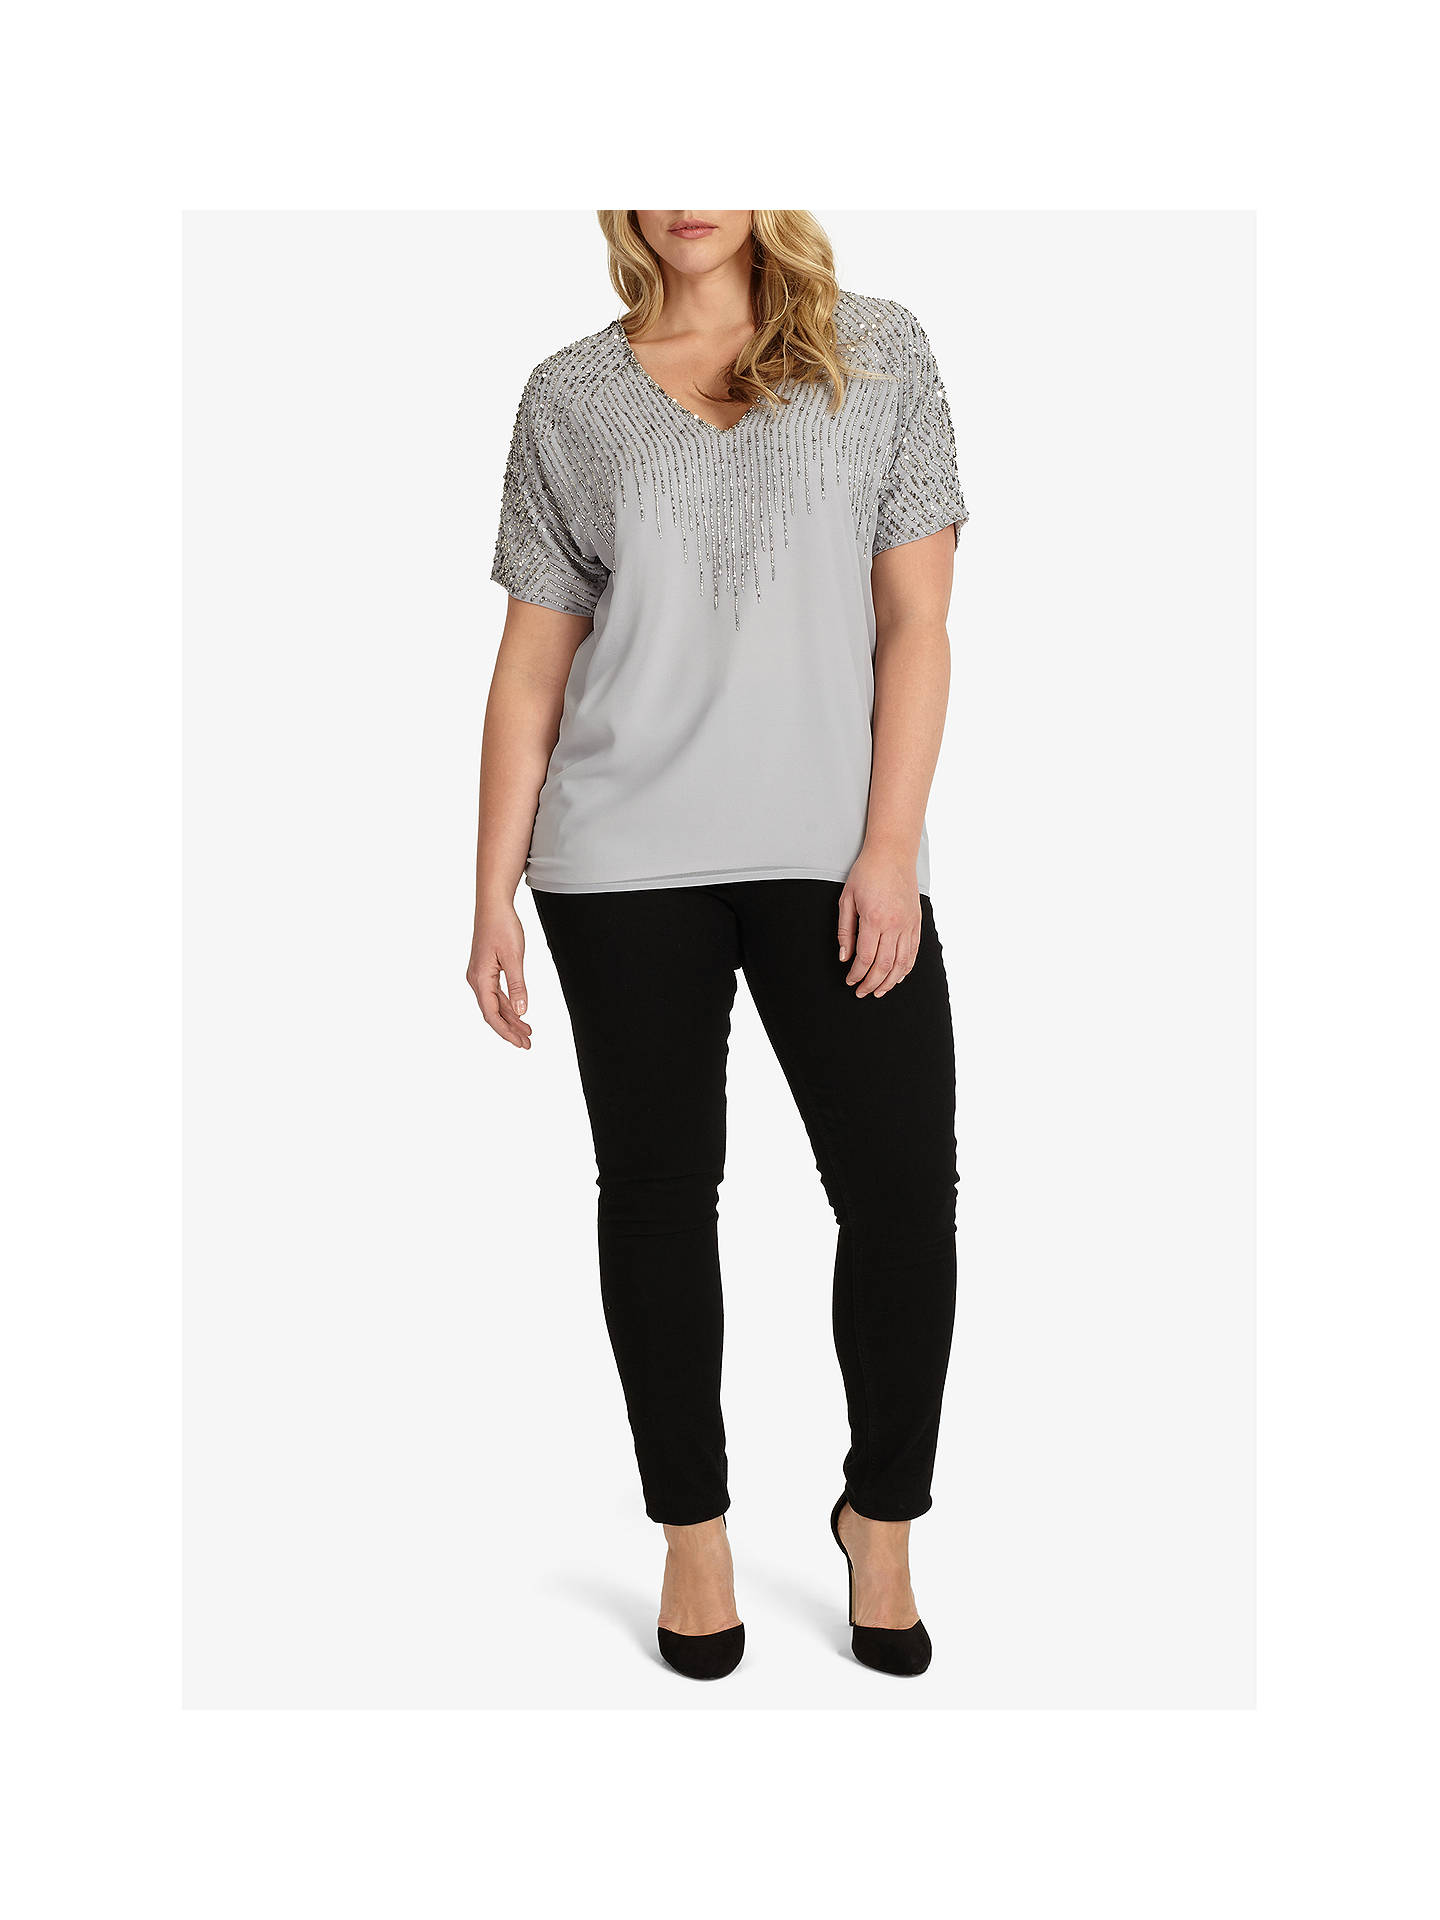 BuyStudio 8 Dexie Beaded Top, Grey, 16 Online at johnlewis.com